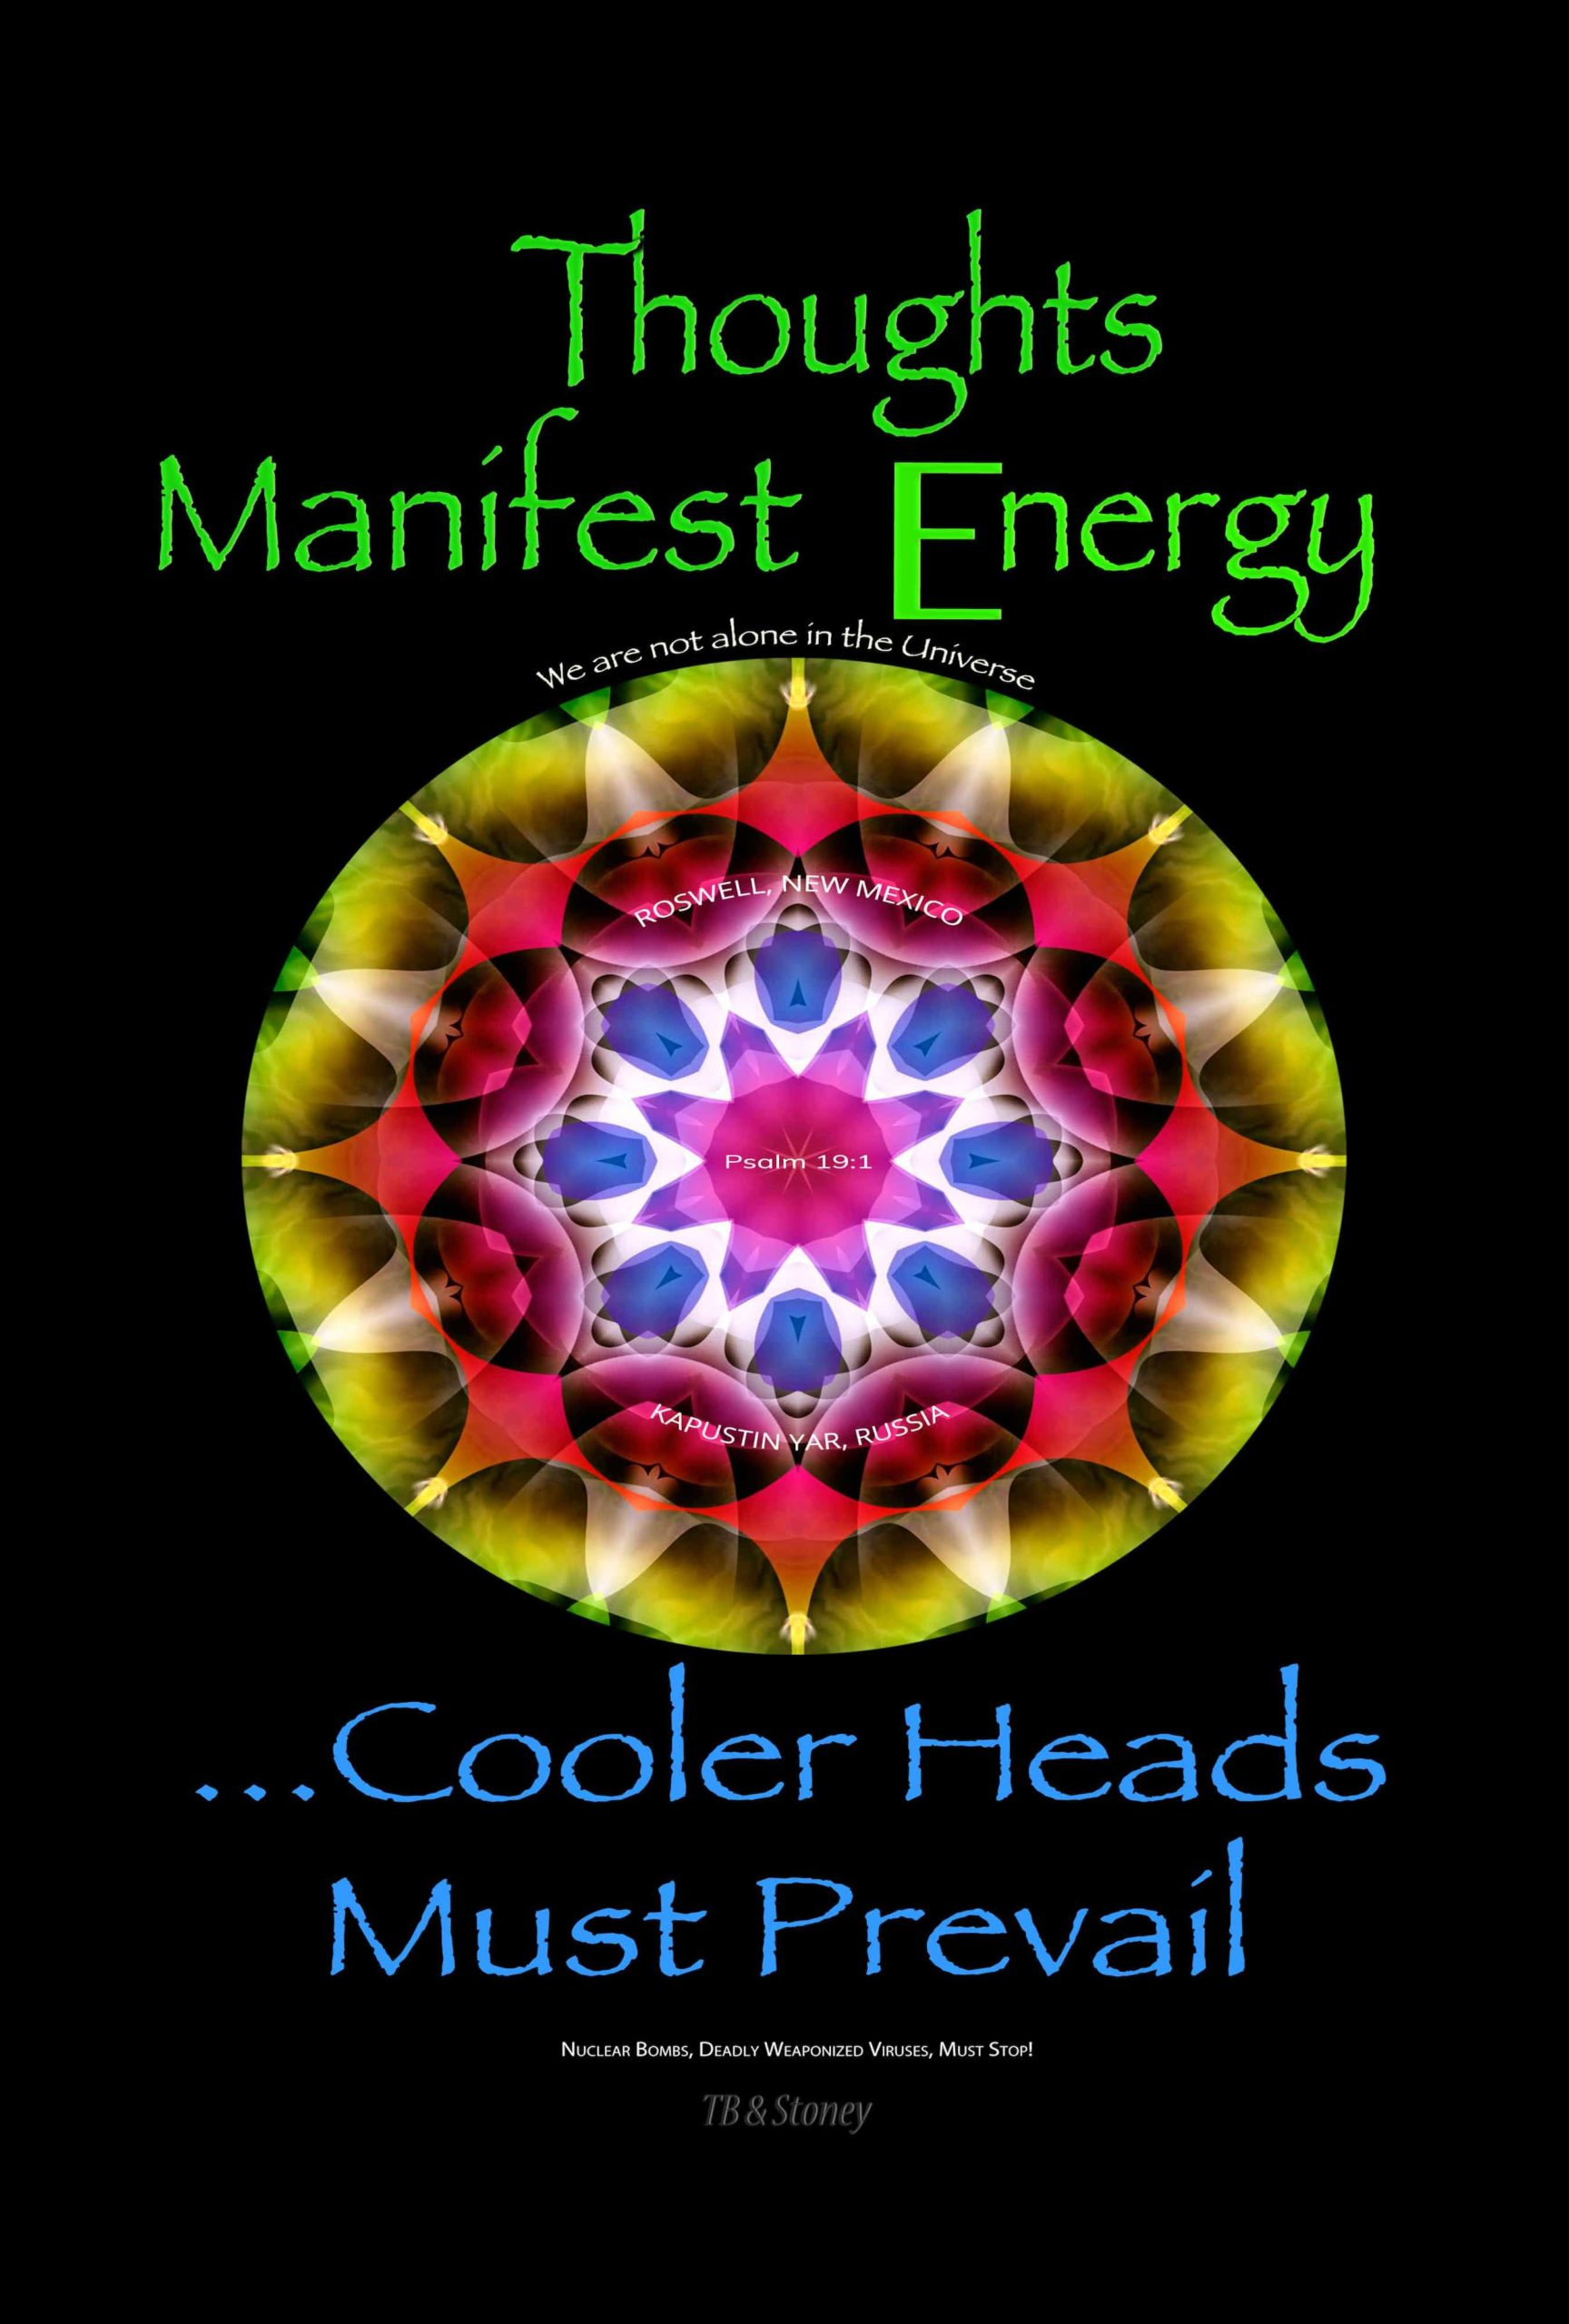 houghts Manifest Energy